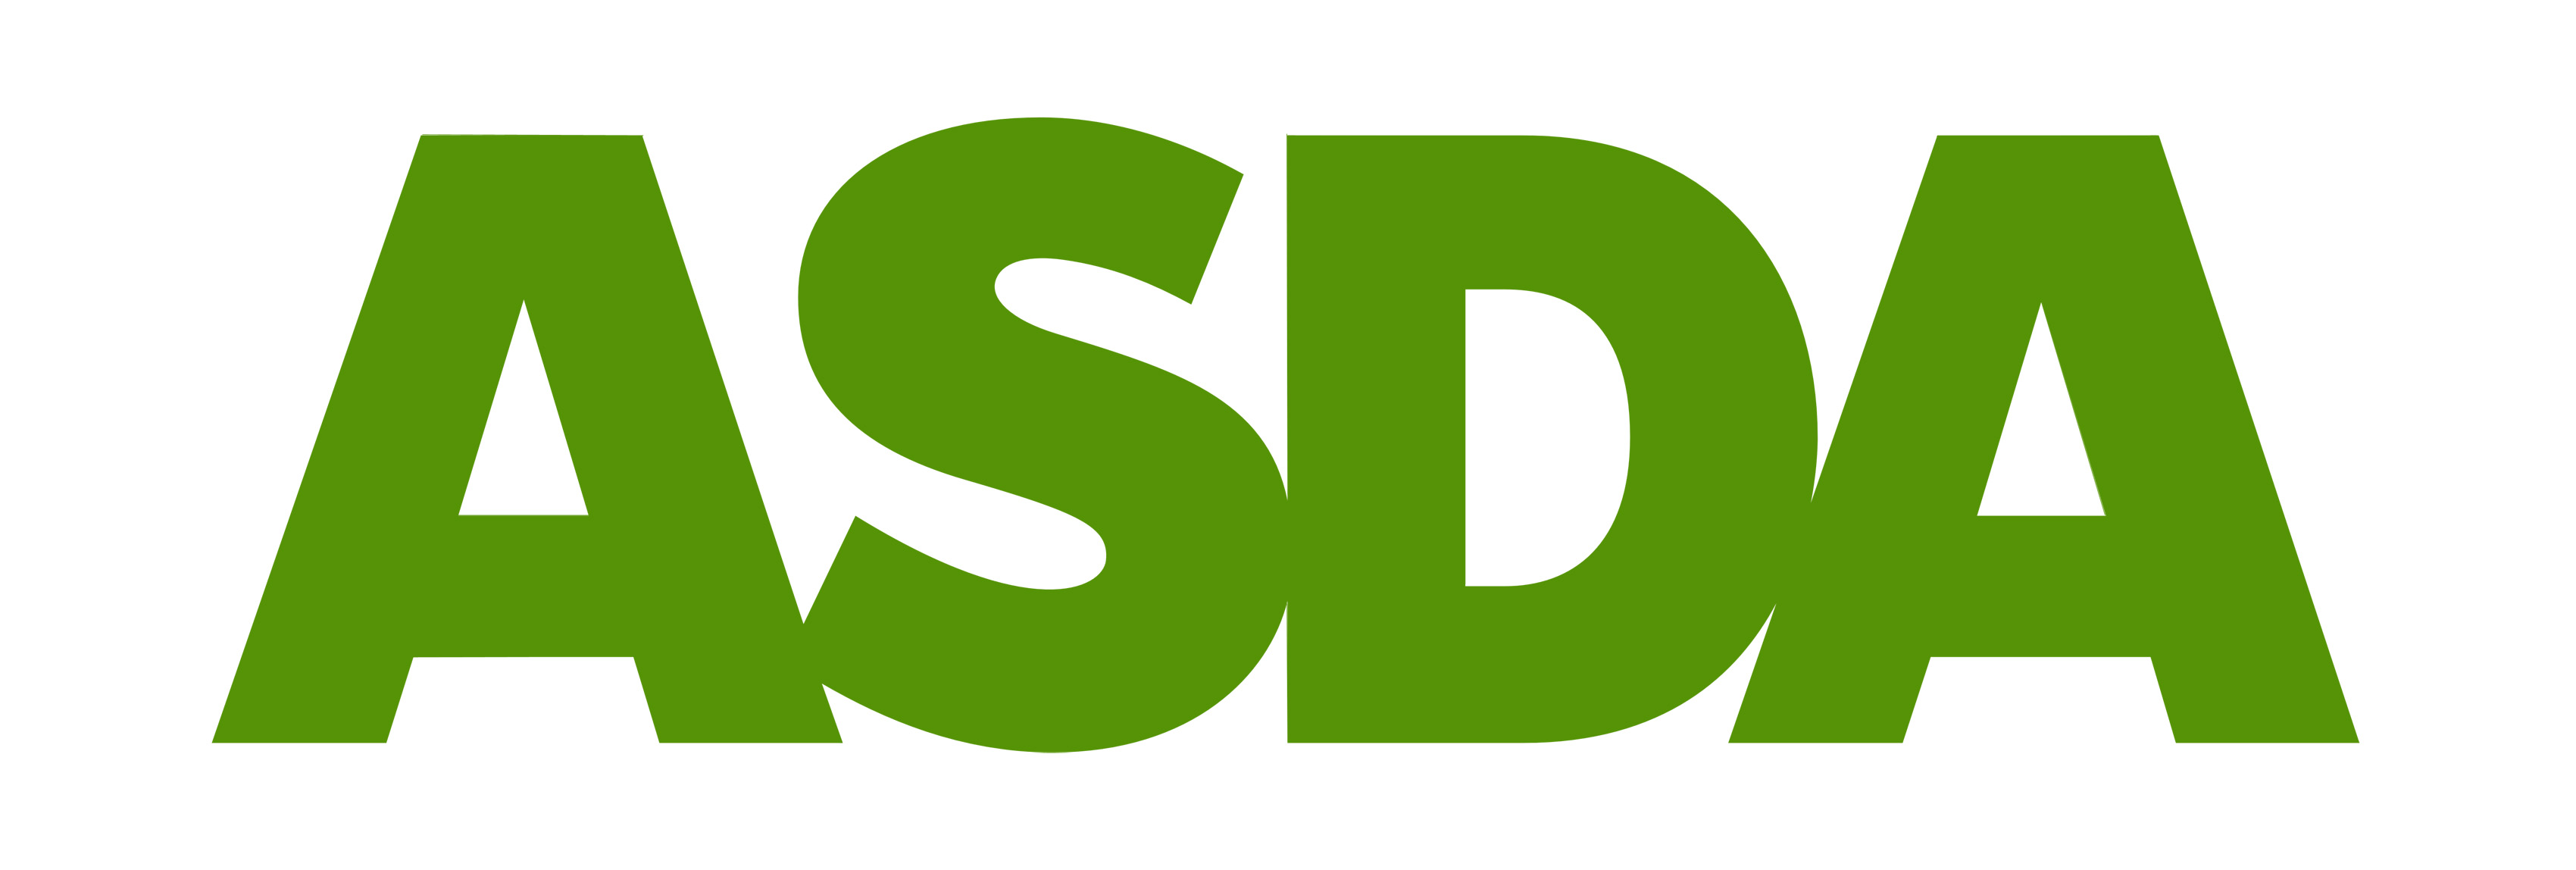 Meaning ASDA logo and symbol.